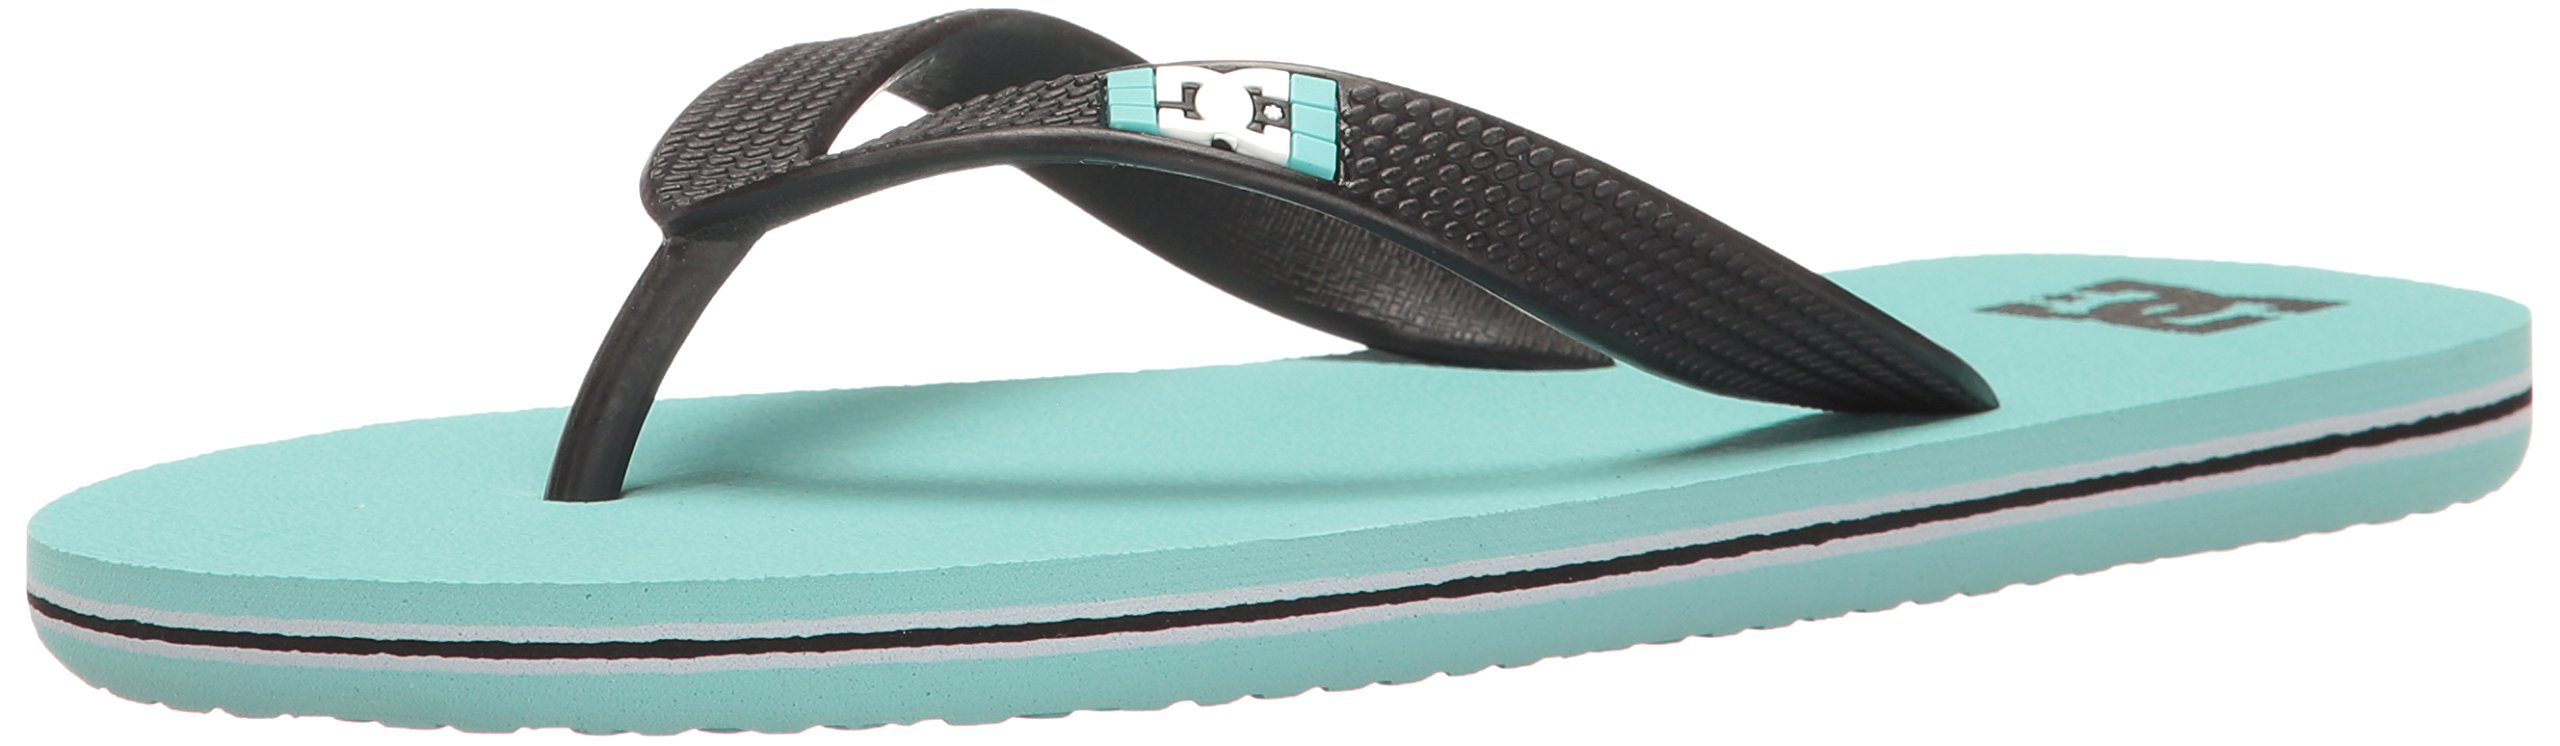 DC Girls' Spray Flip Flop, Turquoise, 6 M US Little Kid